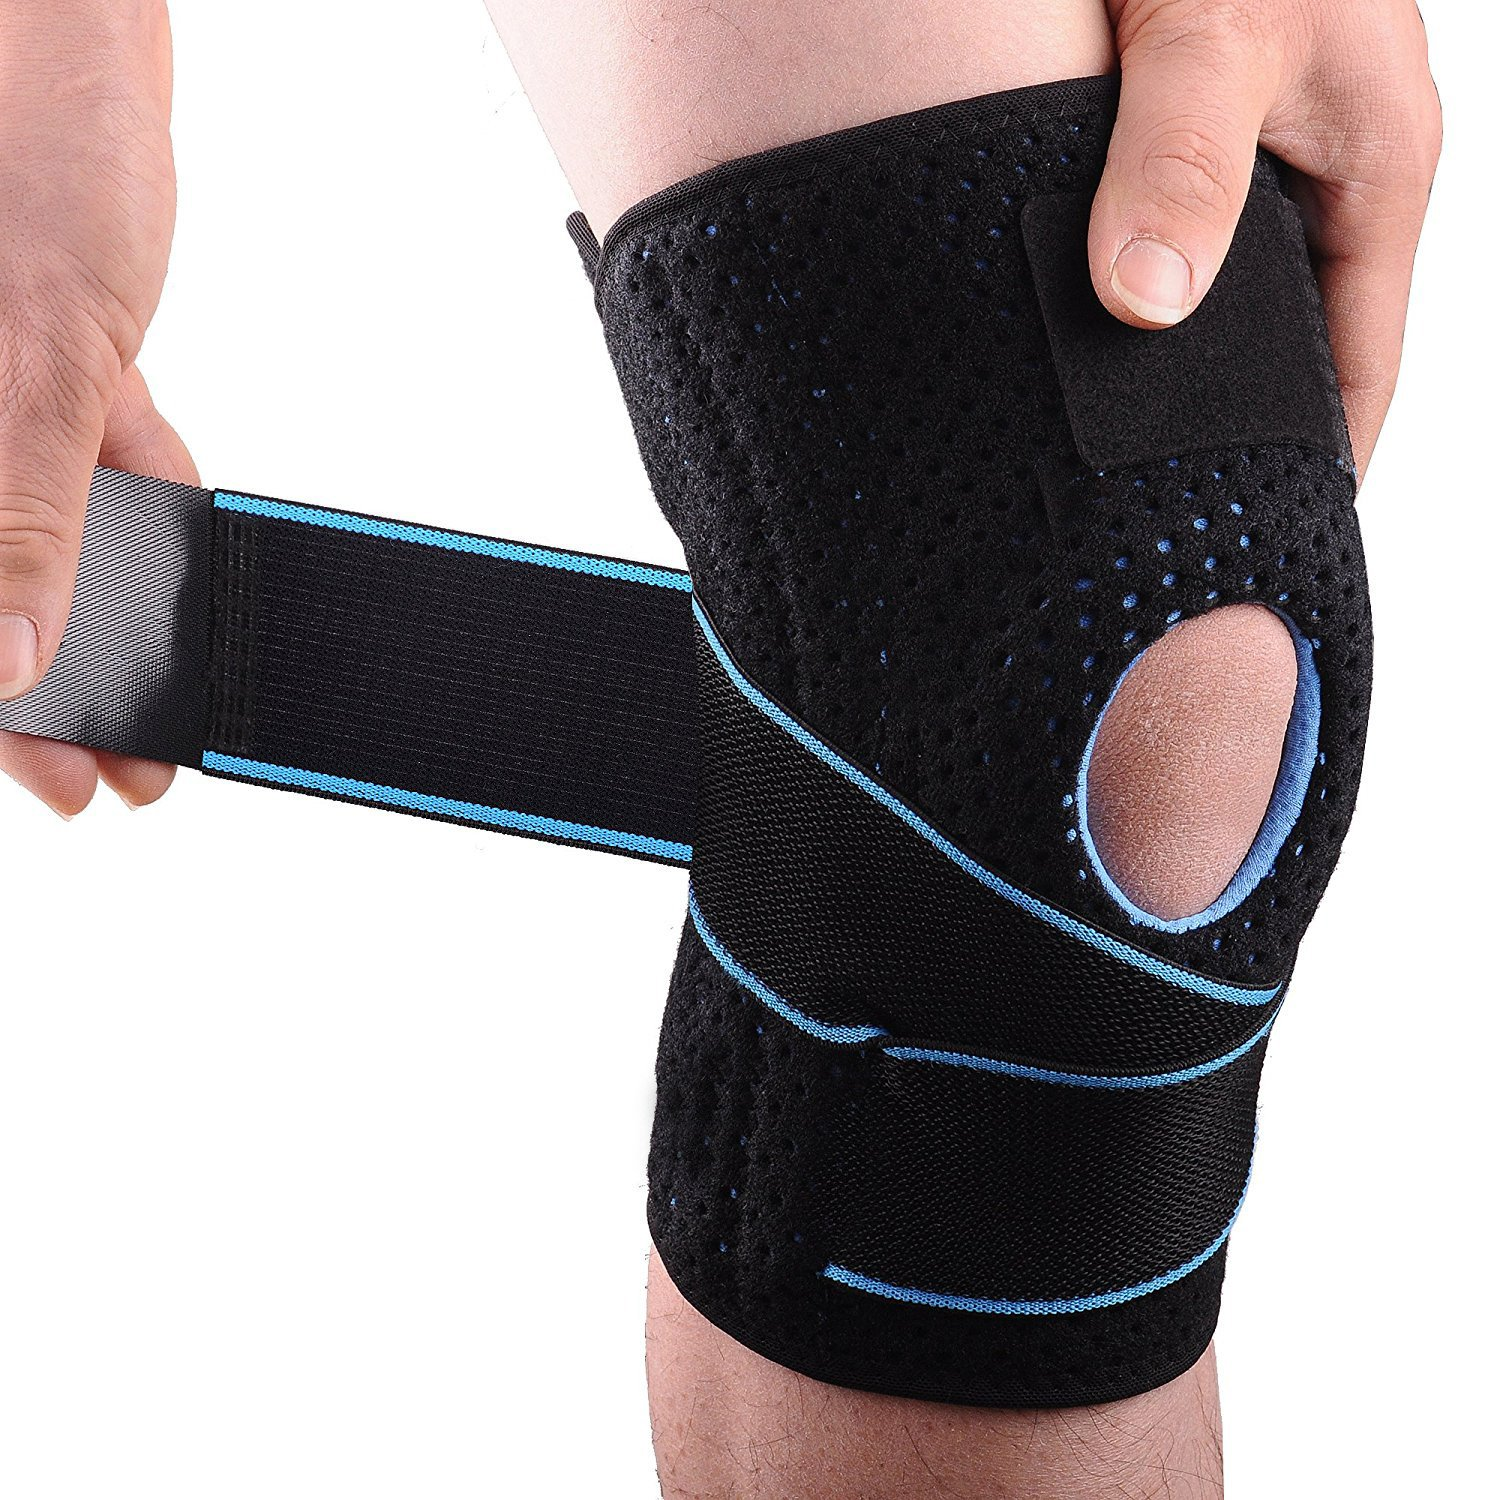 0171bfd94d Knee Brace for Arthritis,ACL and Meniscus Tear,Open-Patella Stabiliser,  Adjustable Brace,Best Knee pad Support for Sports Injury Rehabilitation &  Protection ...